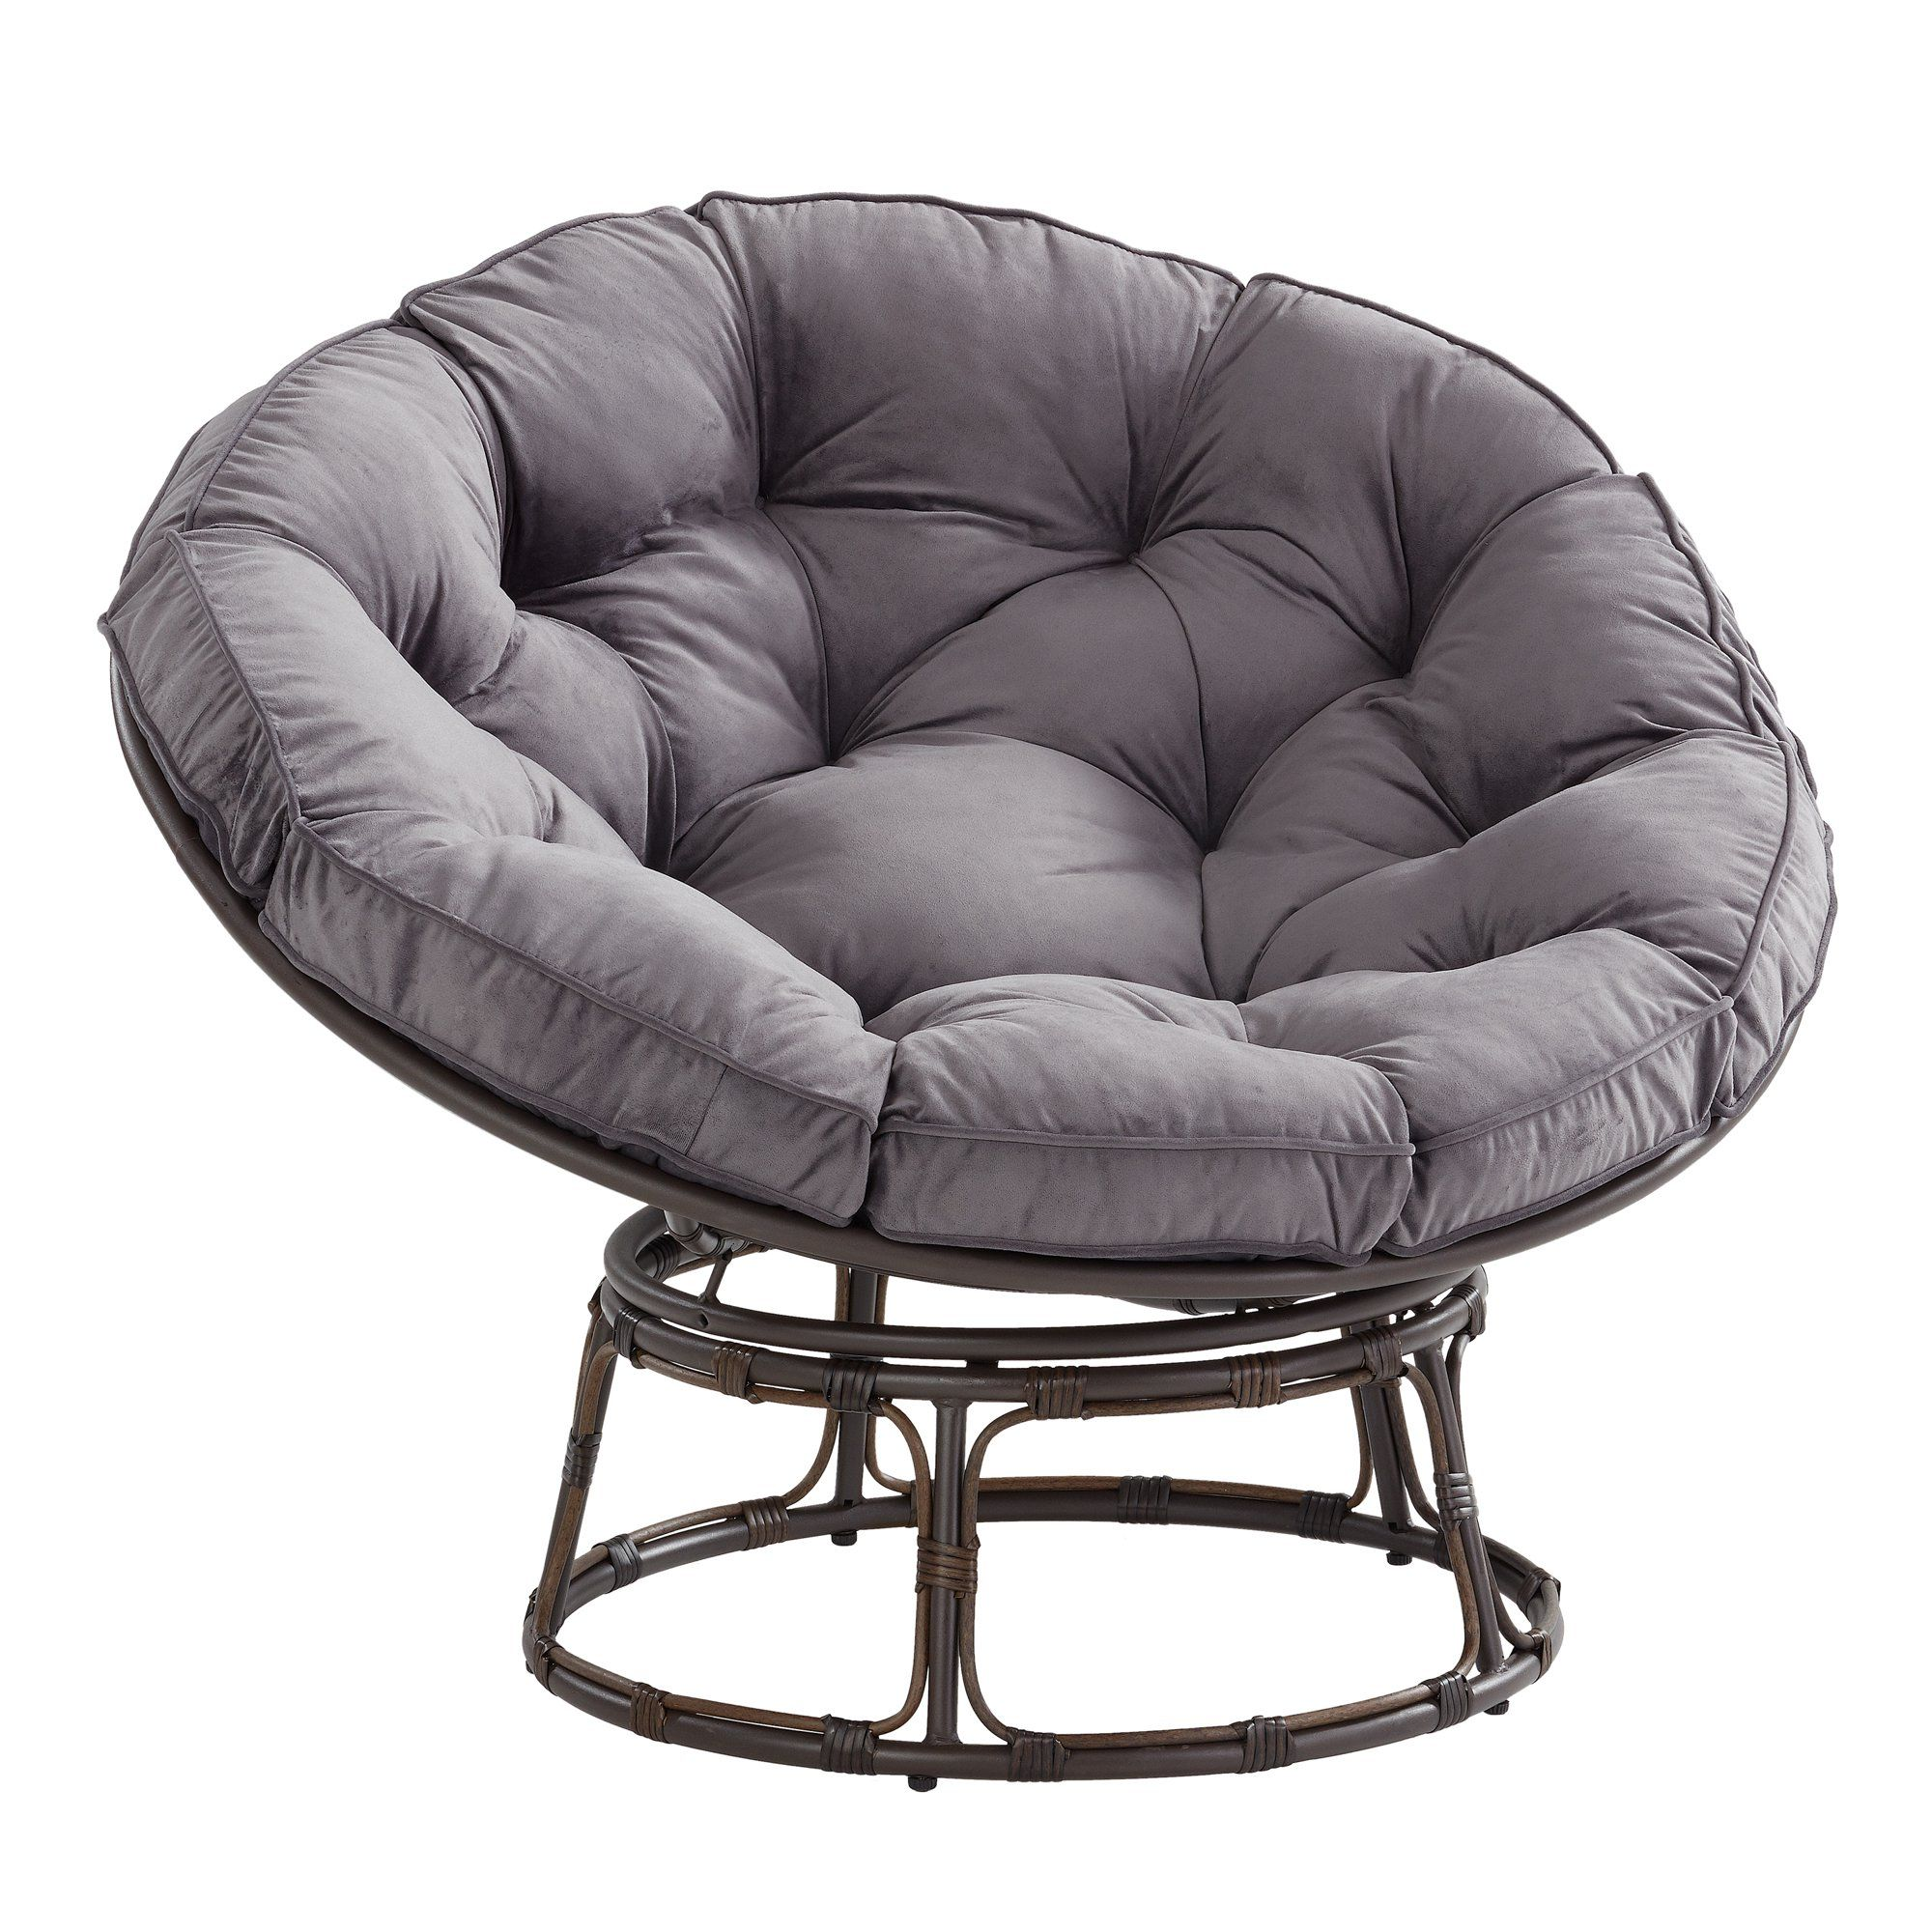 34adfd6c0680938d6e7bc30a2ca18ee6 - Better Homes And Gardens Tufted Wicker Settee Cushion